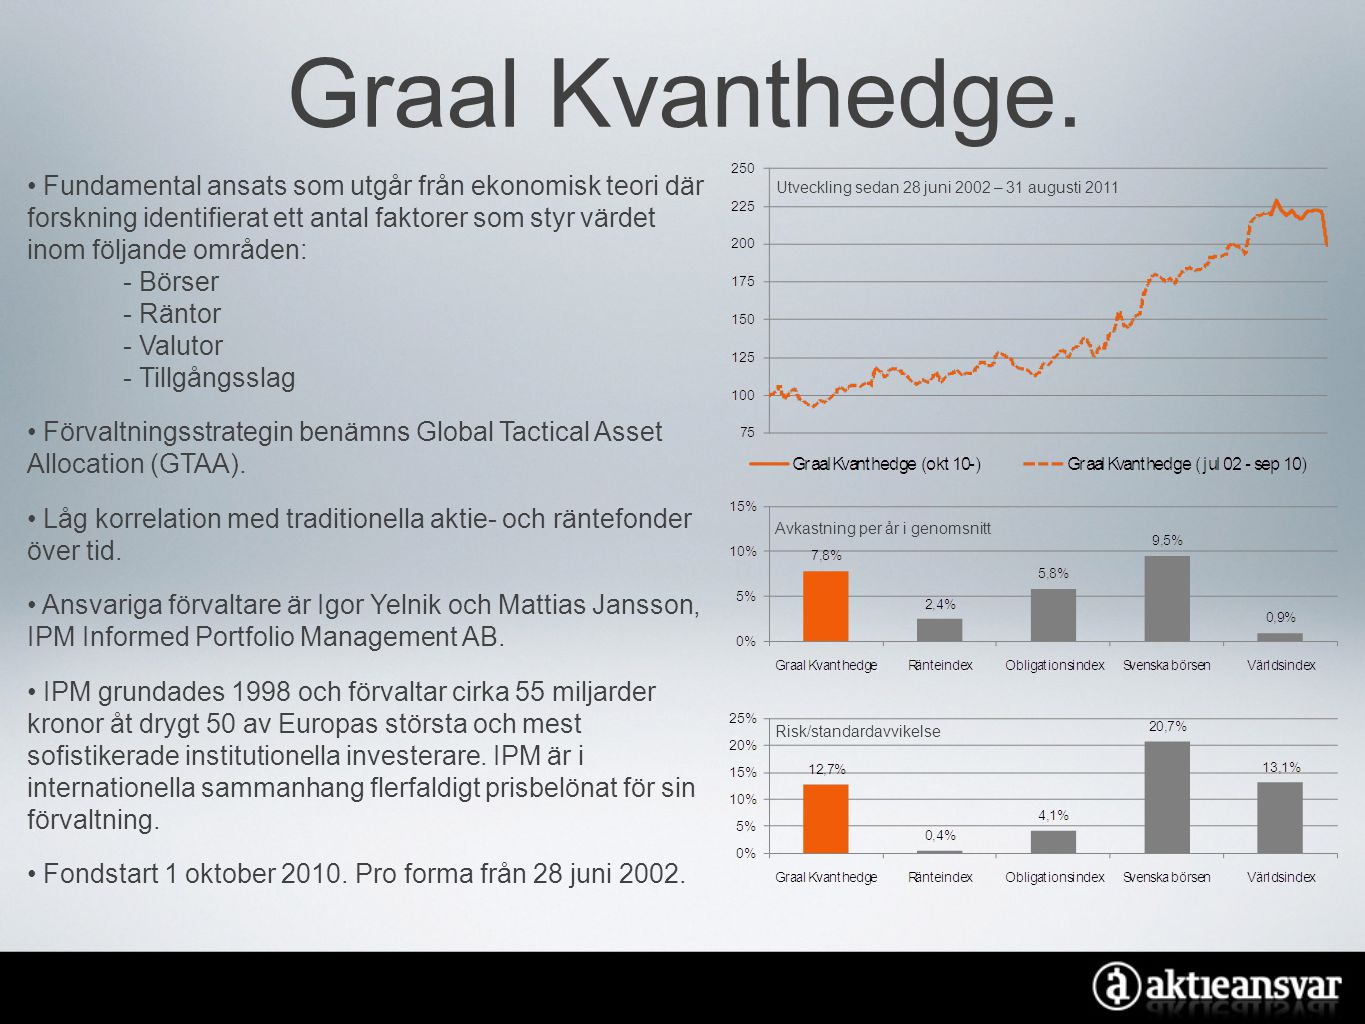 Graal Kvanthedge.